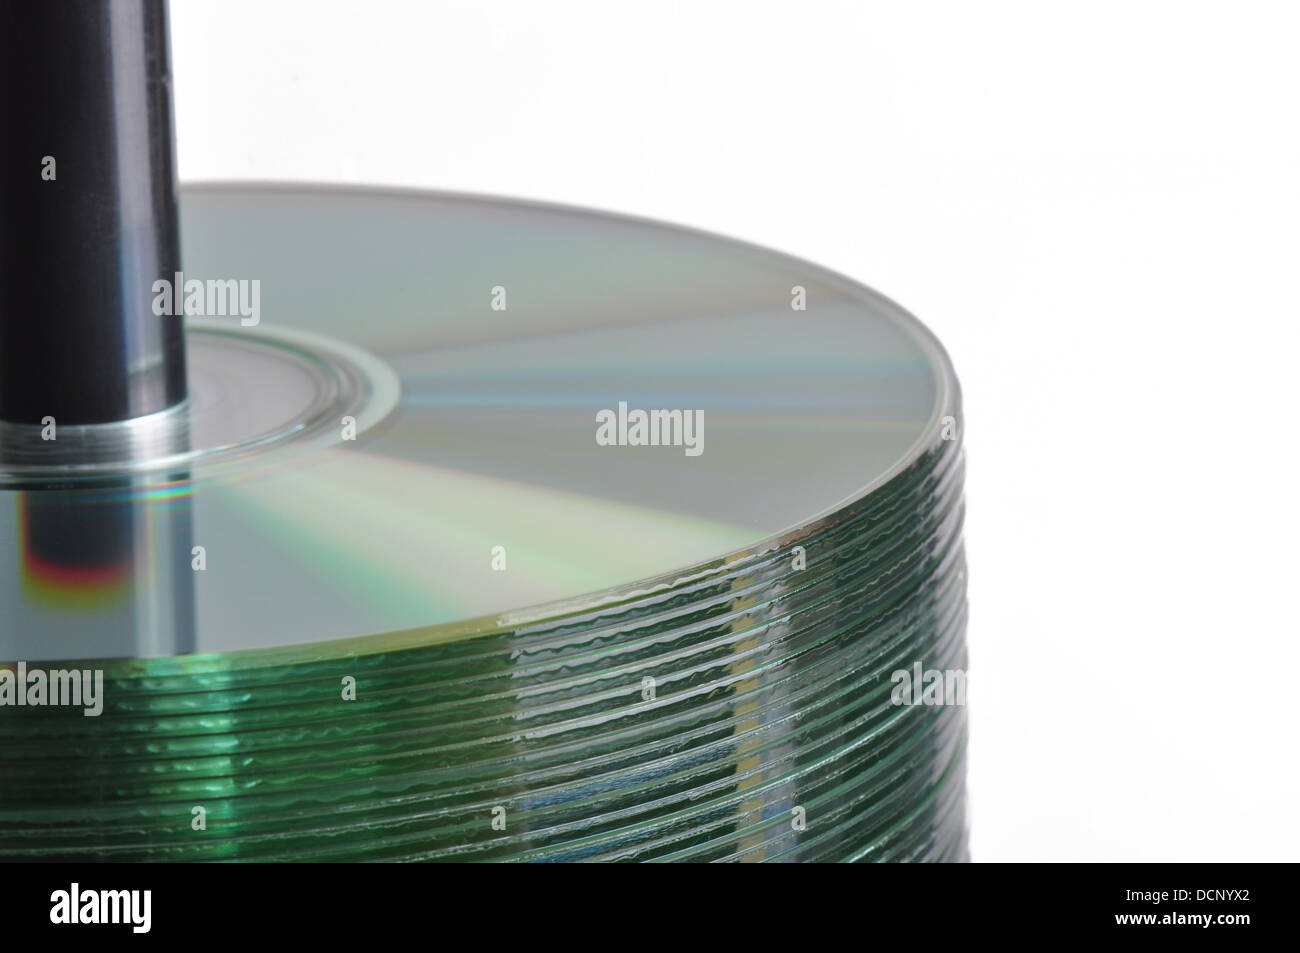 CD Spindle Stack - Stock Image